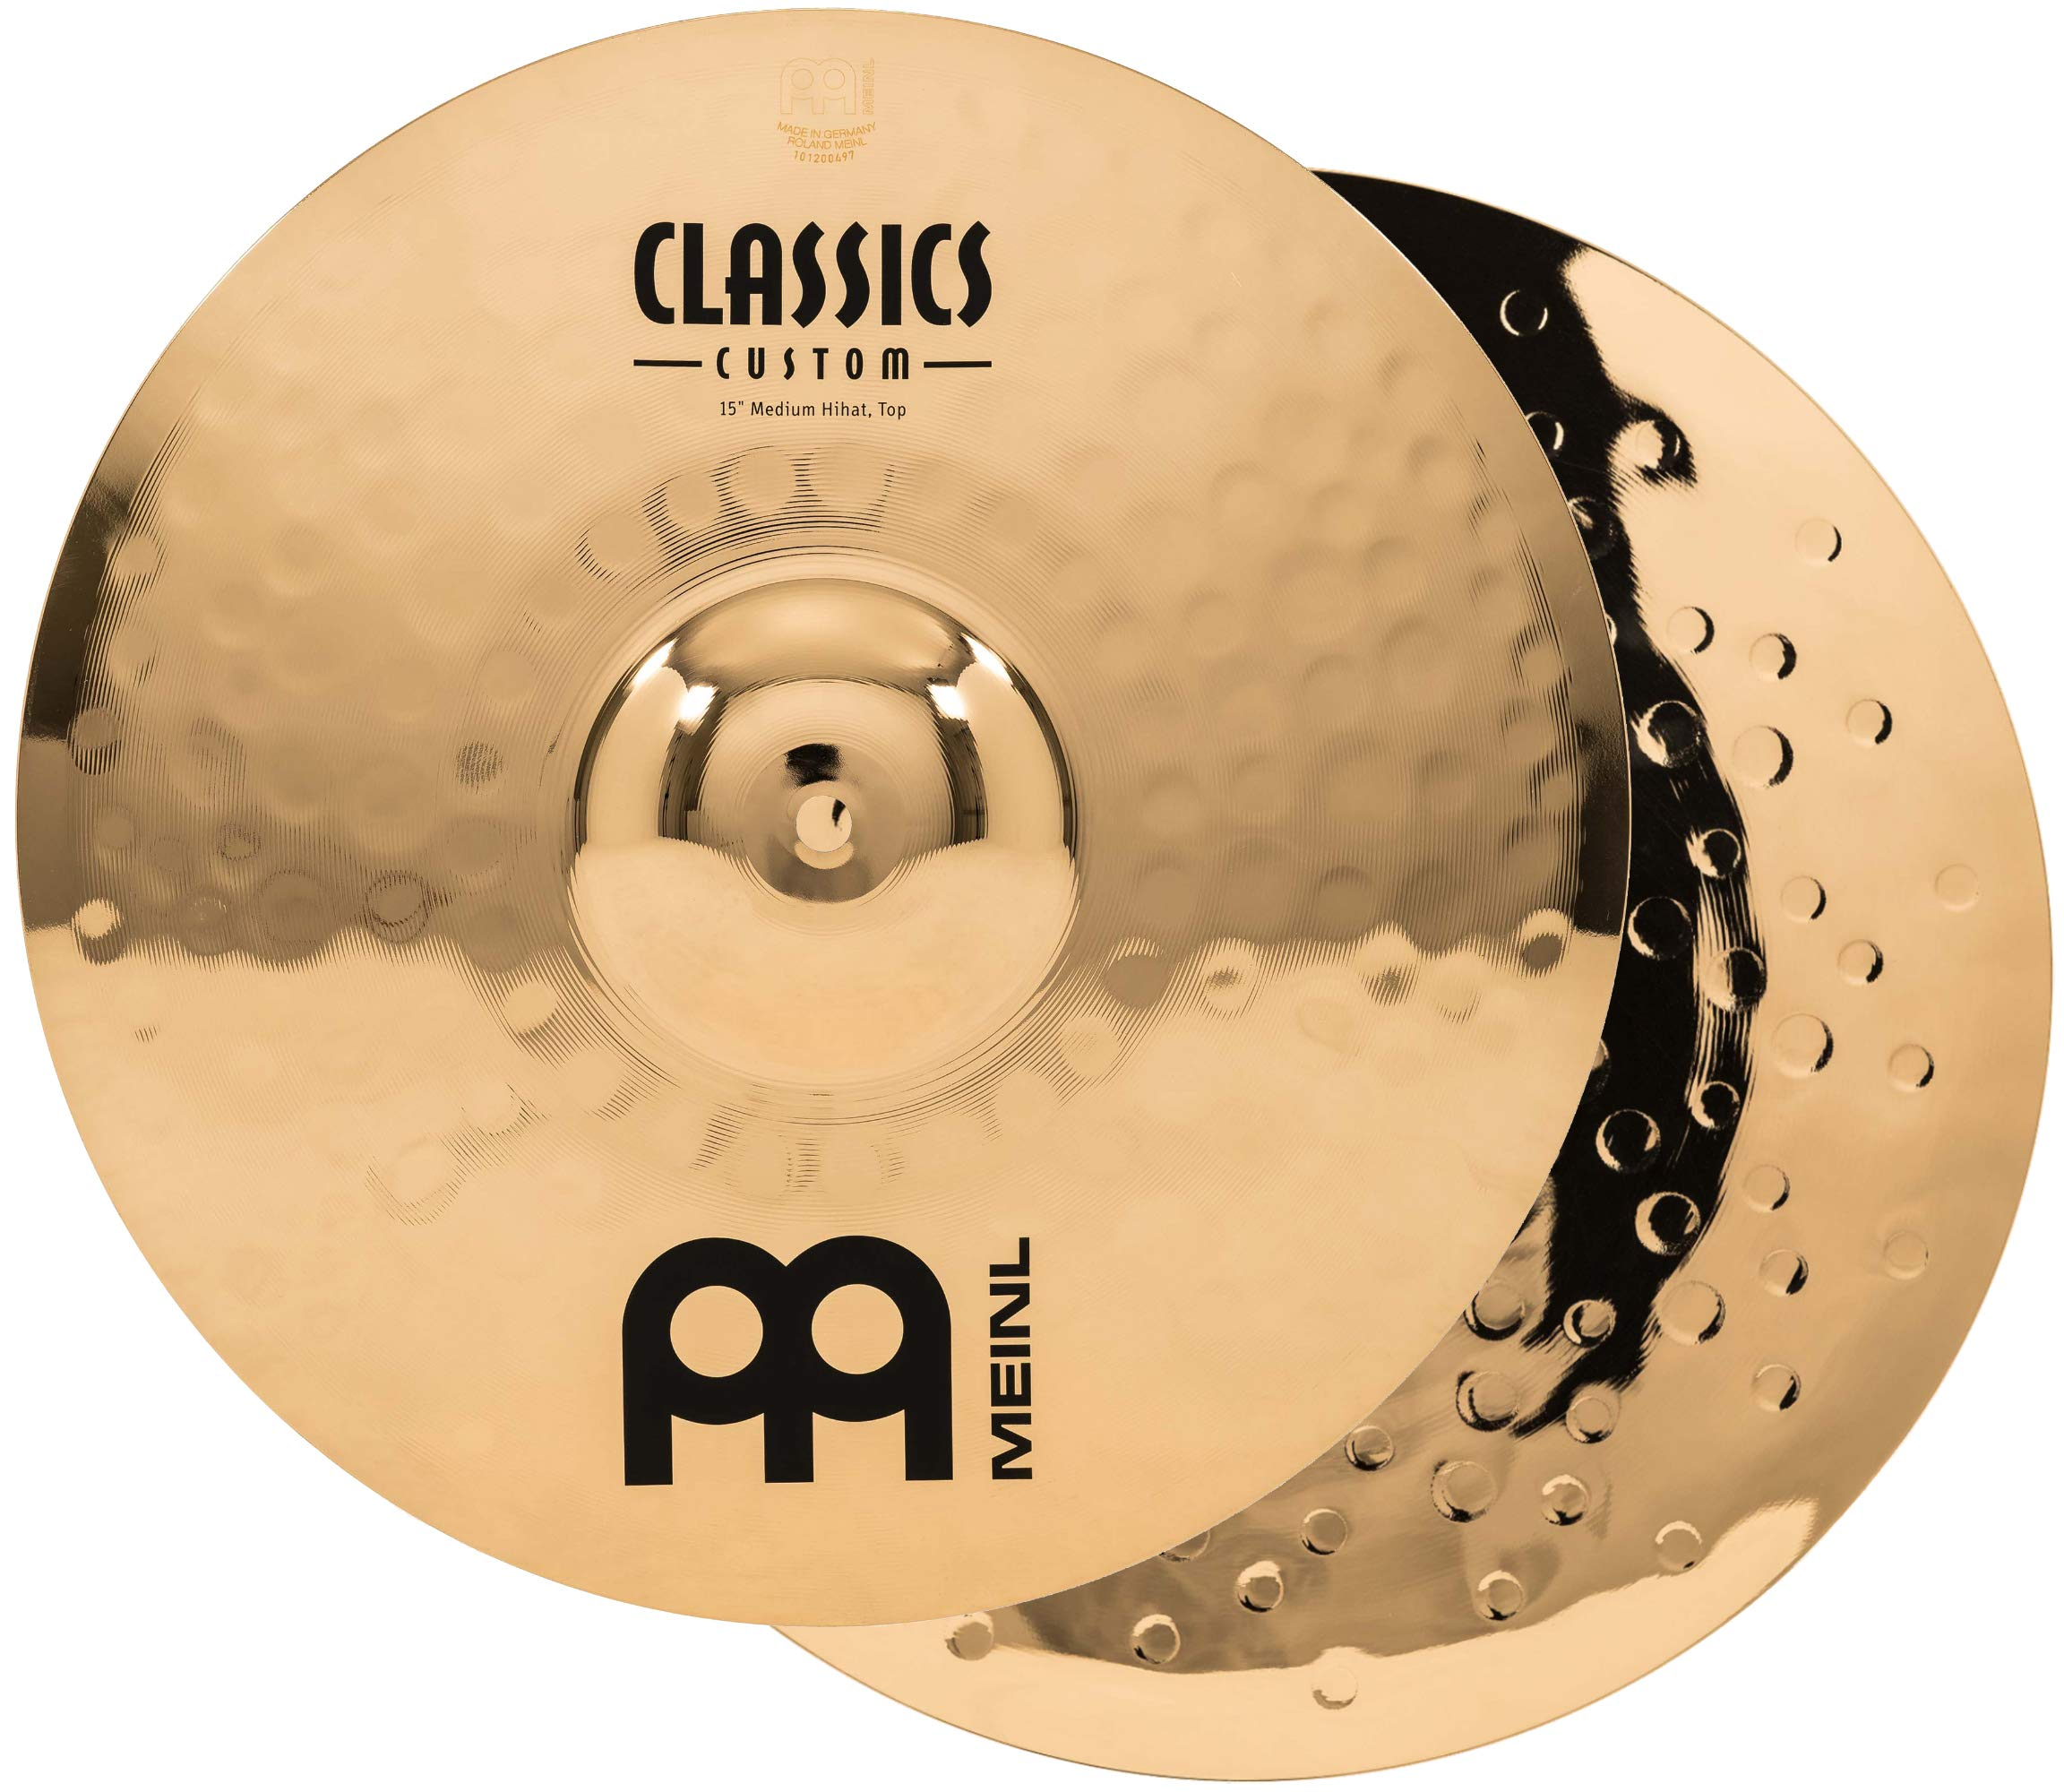 Meinl 15'' Medium Hihat (Hi Hat) Cymbal Pair  -  Classics Custom Brilliant - Made in Germany, 2-YEAR WARRANTY (CC15MH-B) by Meinl Cymbals